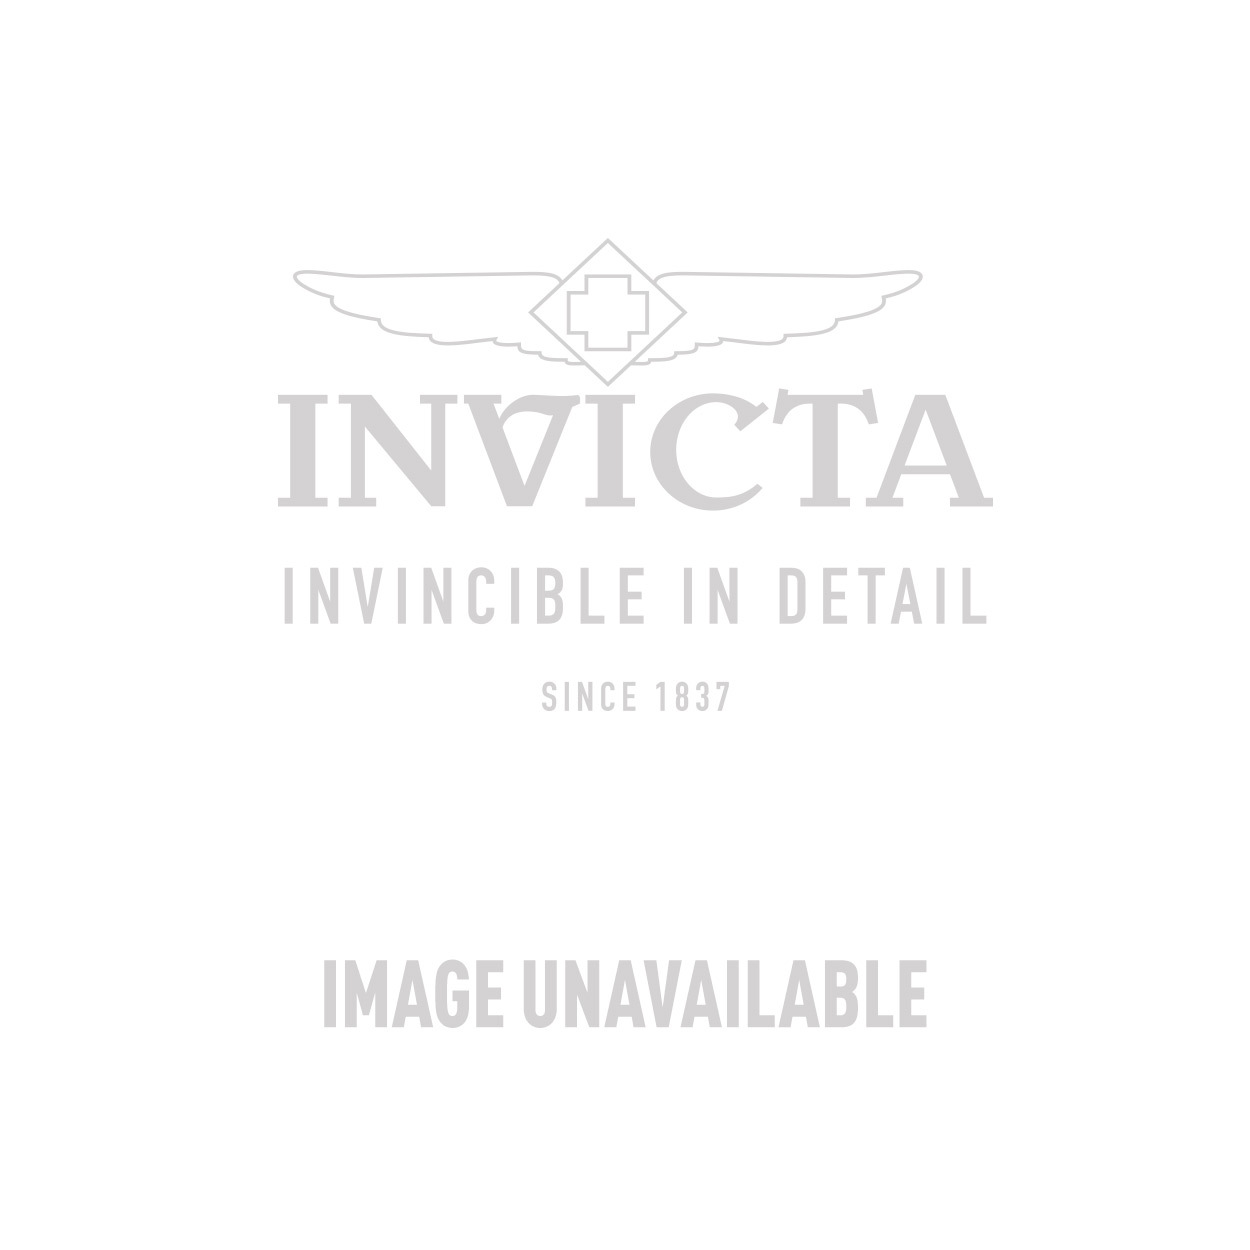 Invicta Specialty Quartz Watch - Stainless Steel case Stainless Steel band - Model 14887